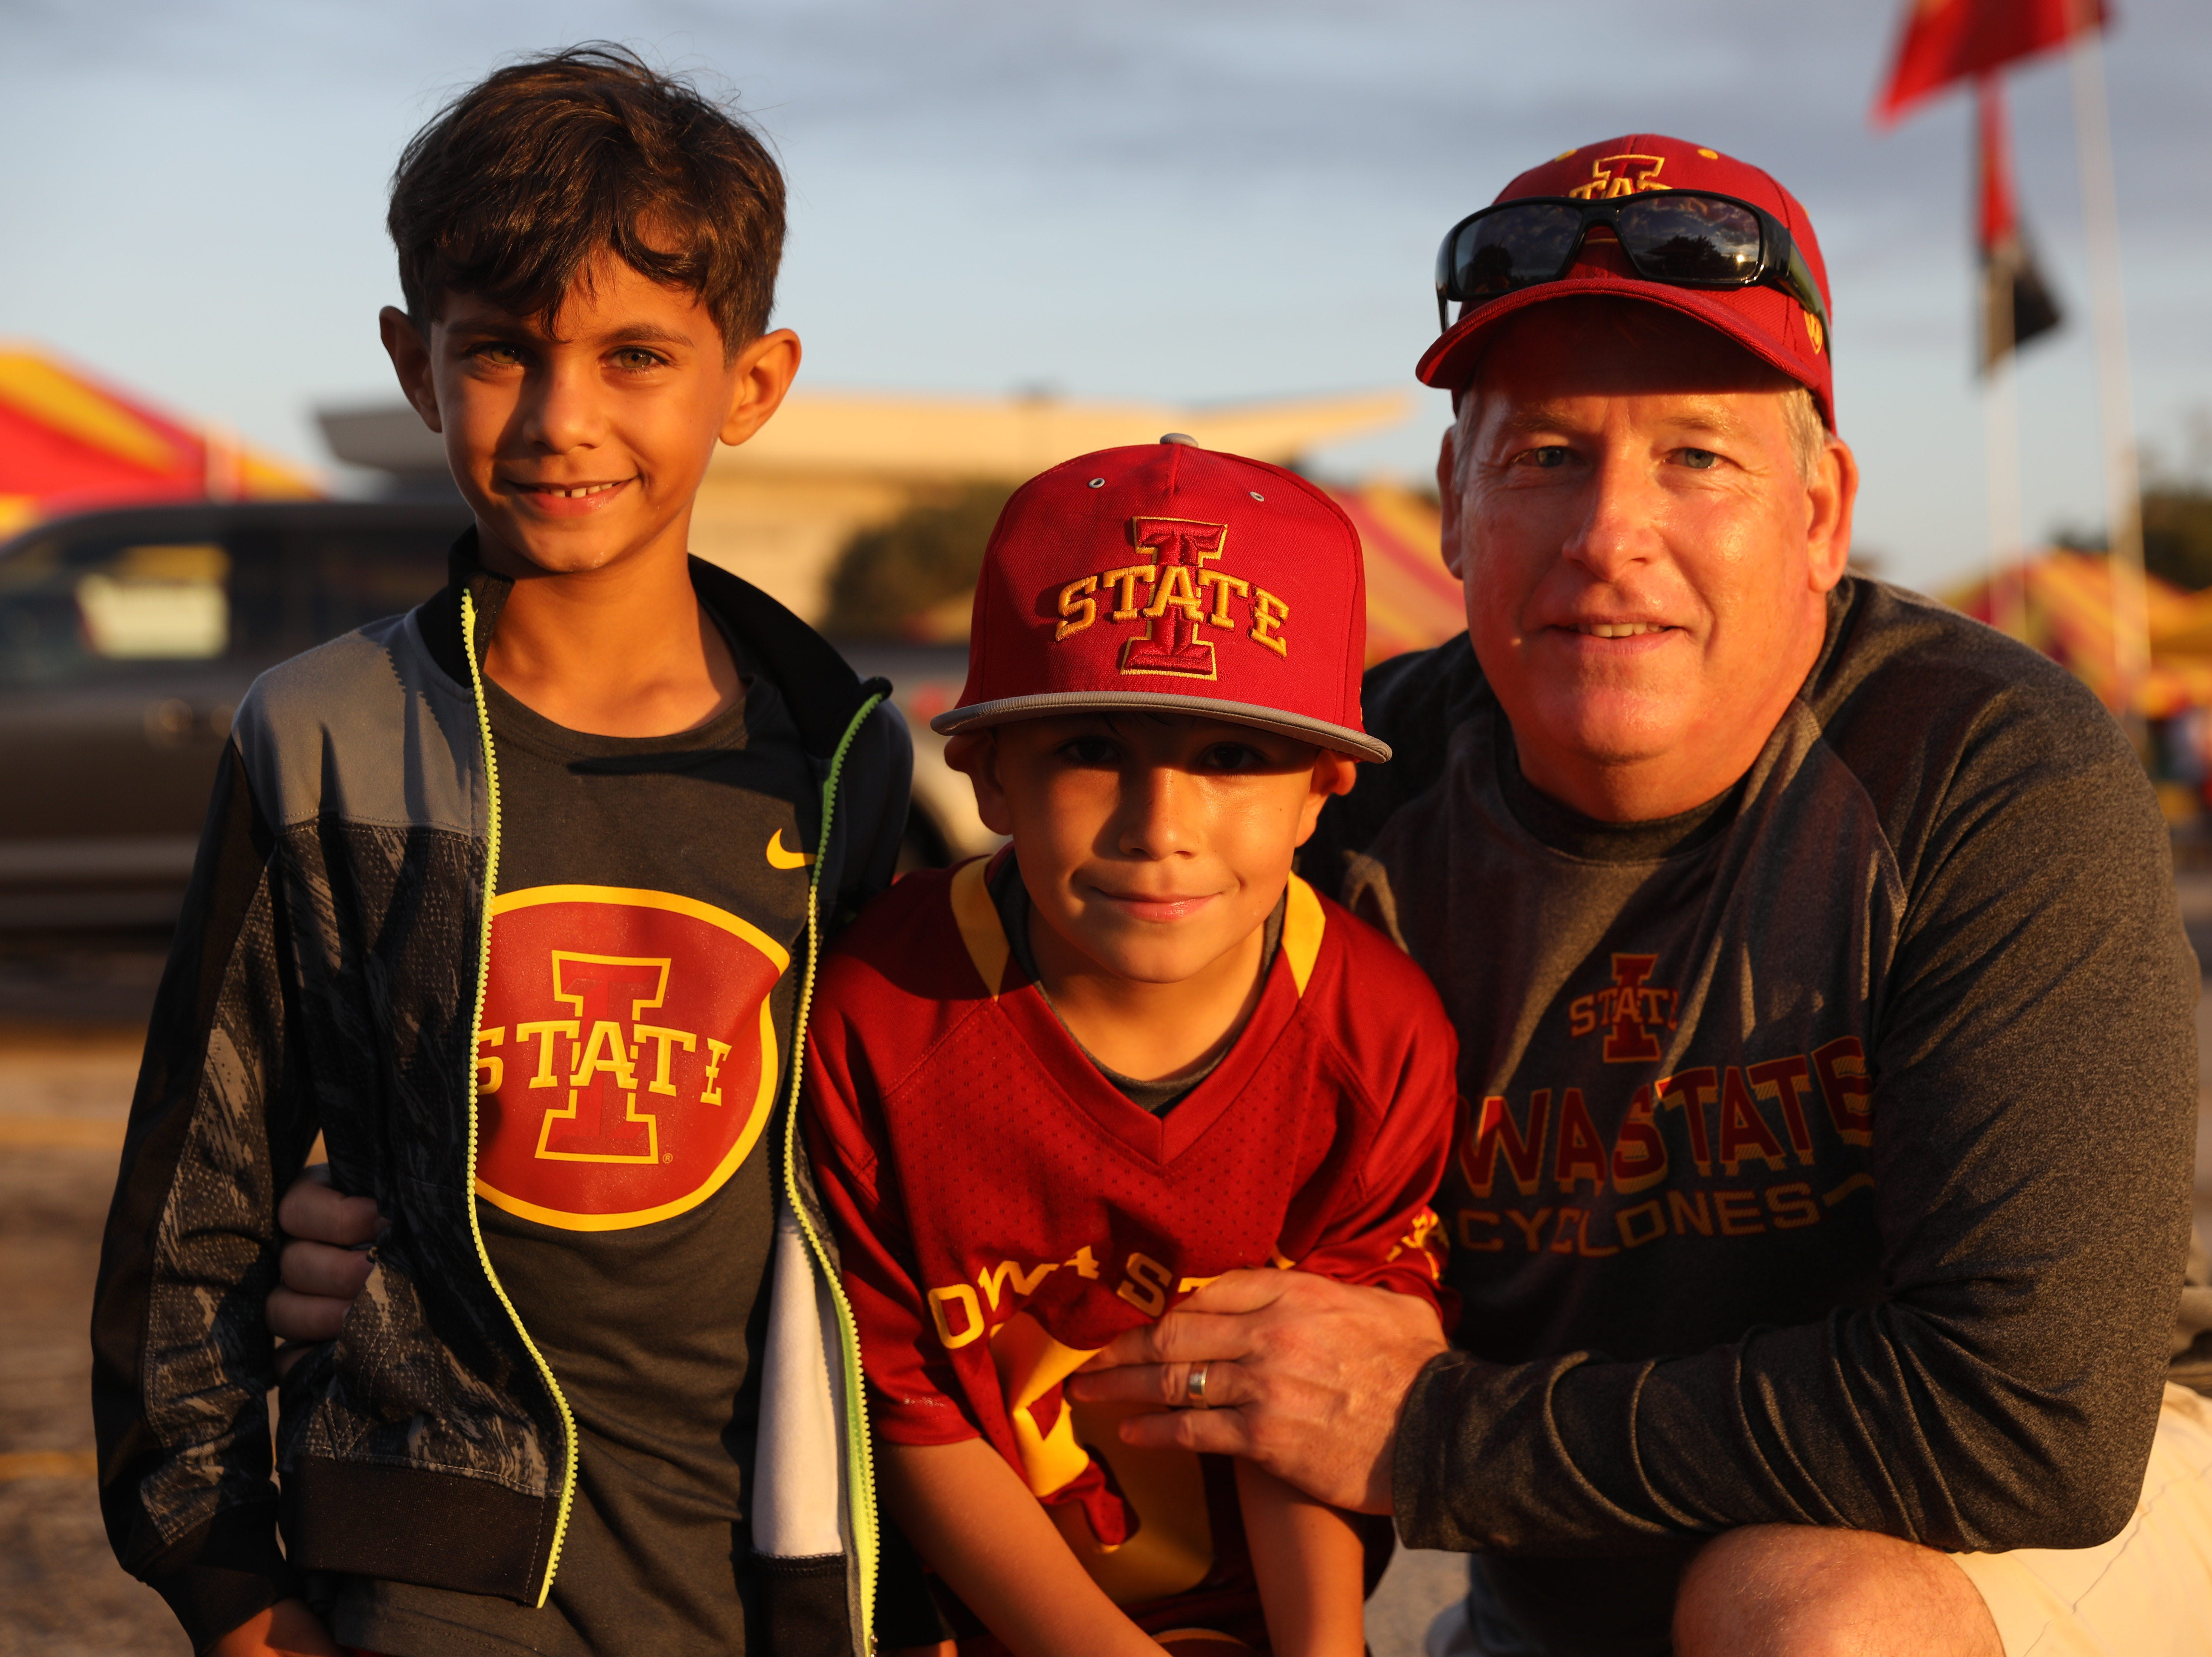 Aashir Jha, 7, (from left) Aiden Dale, 7, and Mike Dale, all of Hayward, Calif., Saturday, Sept. 15, 2018, before the Iowa State football game against Oklahoma in Ames.